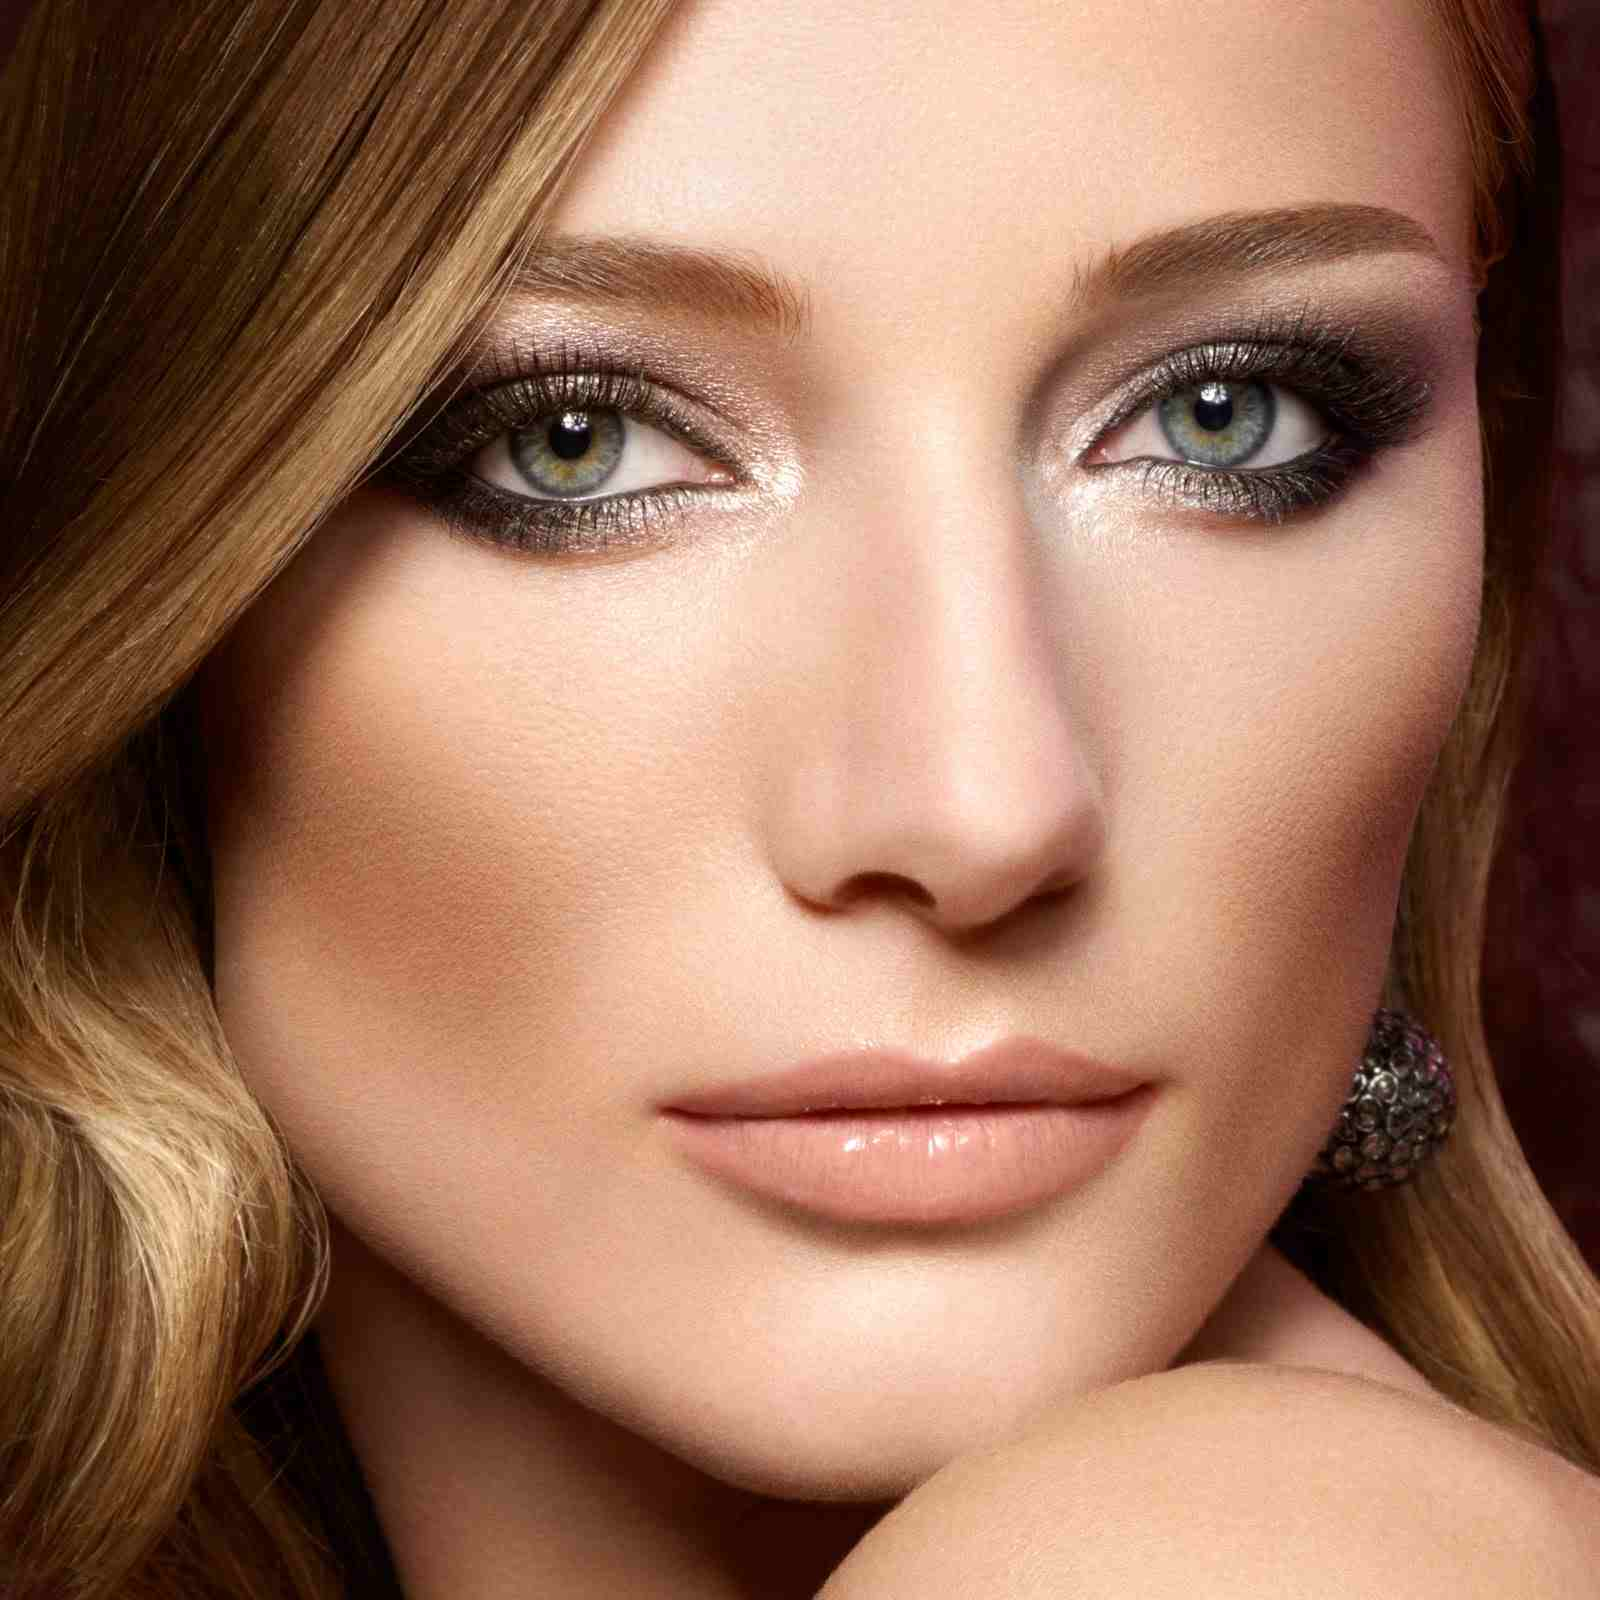 Smokey Eye Mit Goldschimmer Ein Effektvolles Make Up - Braut Make Up Grüne Augen